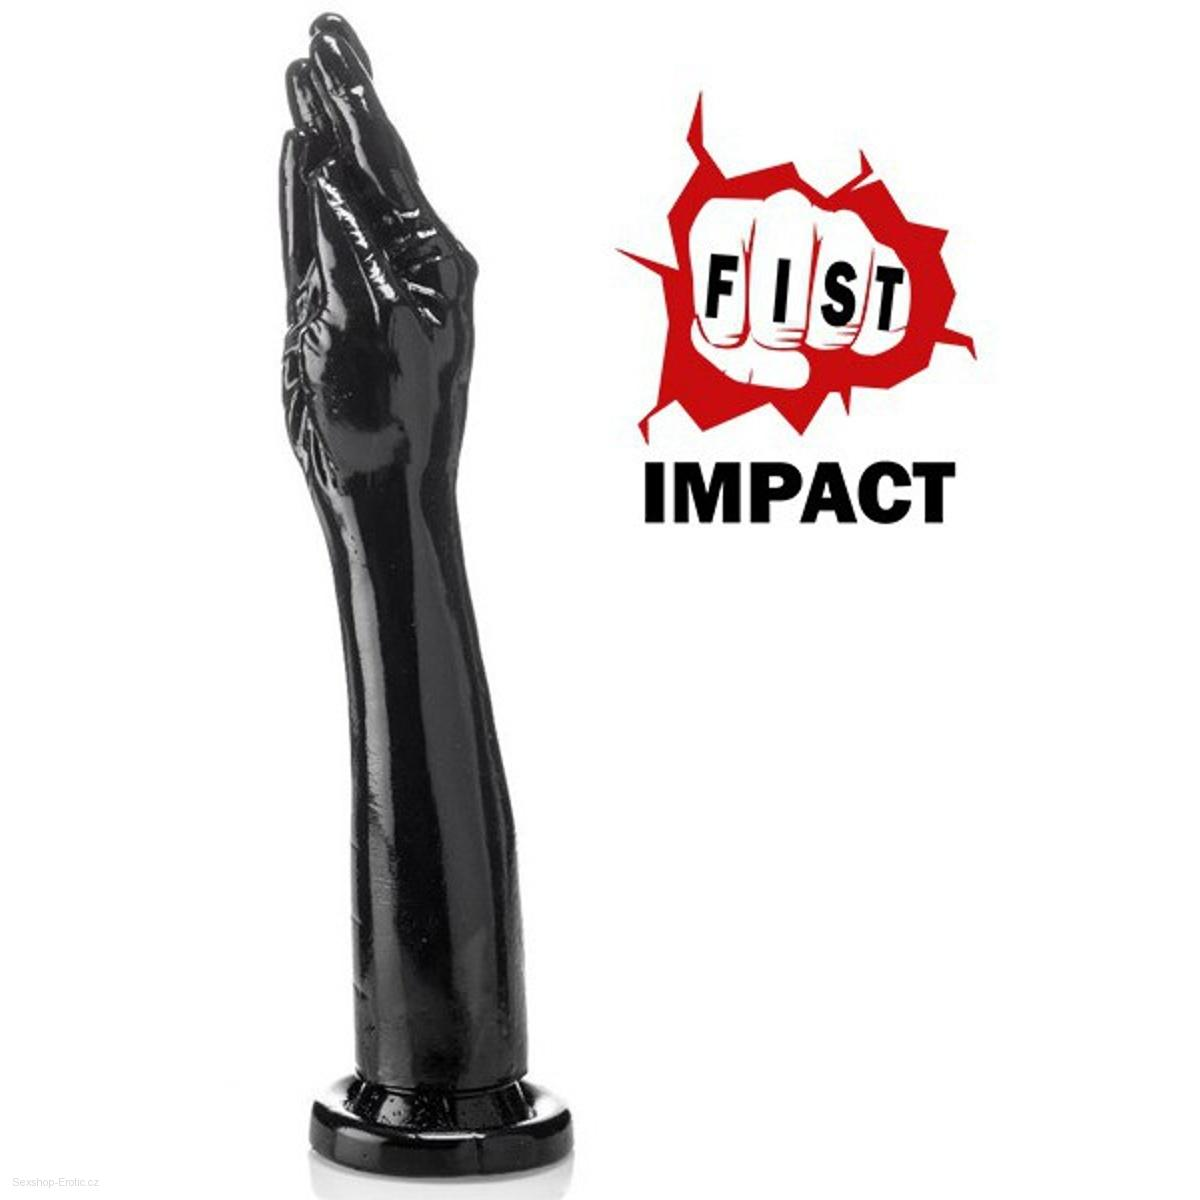 Ruka na fisting Fist Impact 5 Fingers plus black